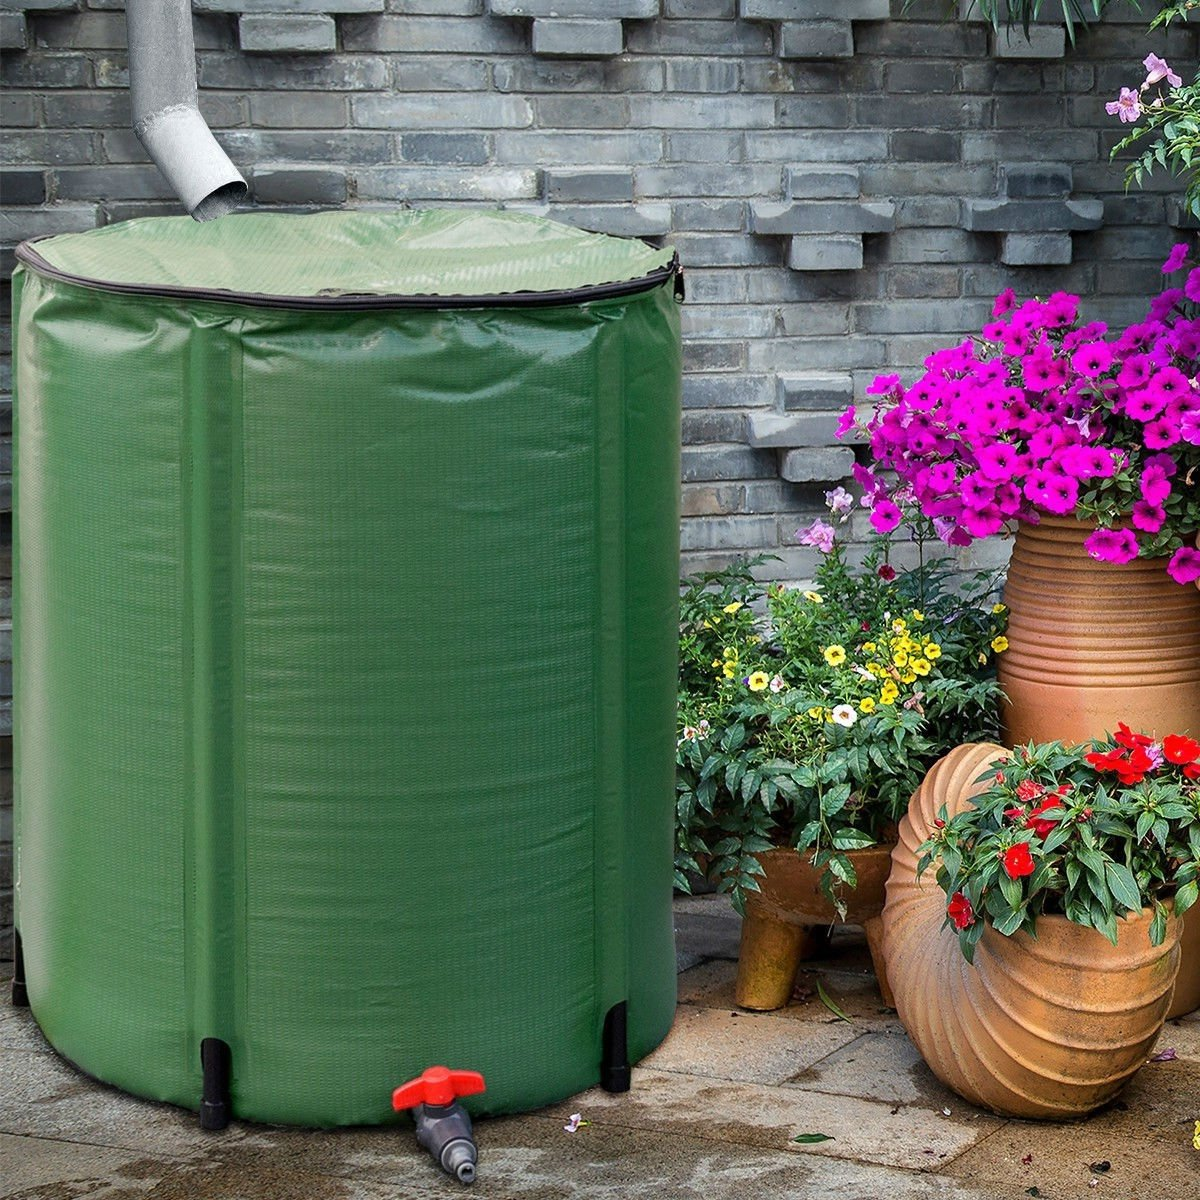 Portable 60-Gallon Rain Barrel Collapsible with Zippered Top in Green Color